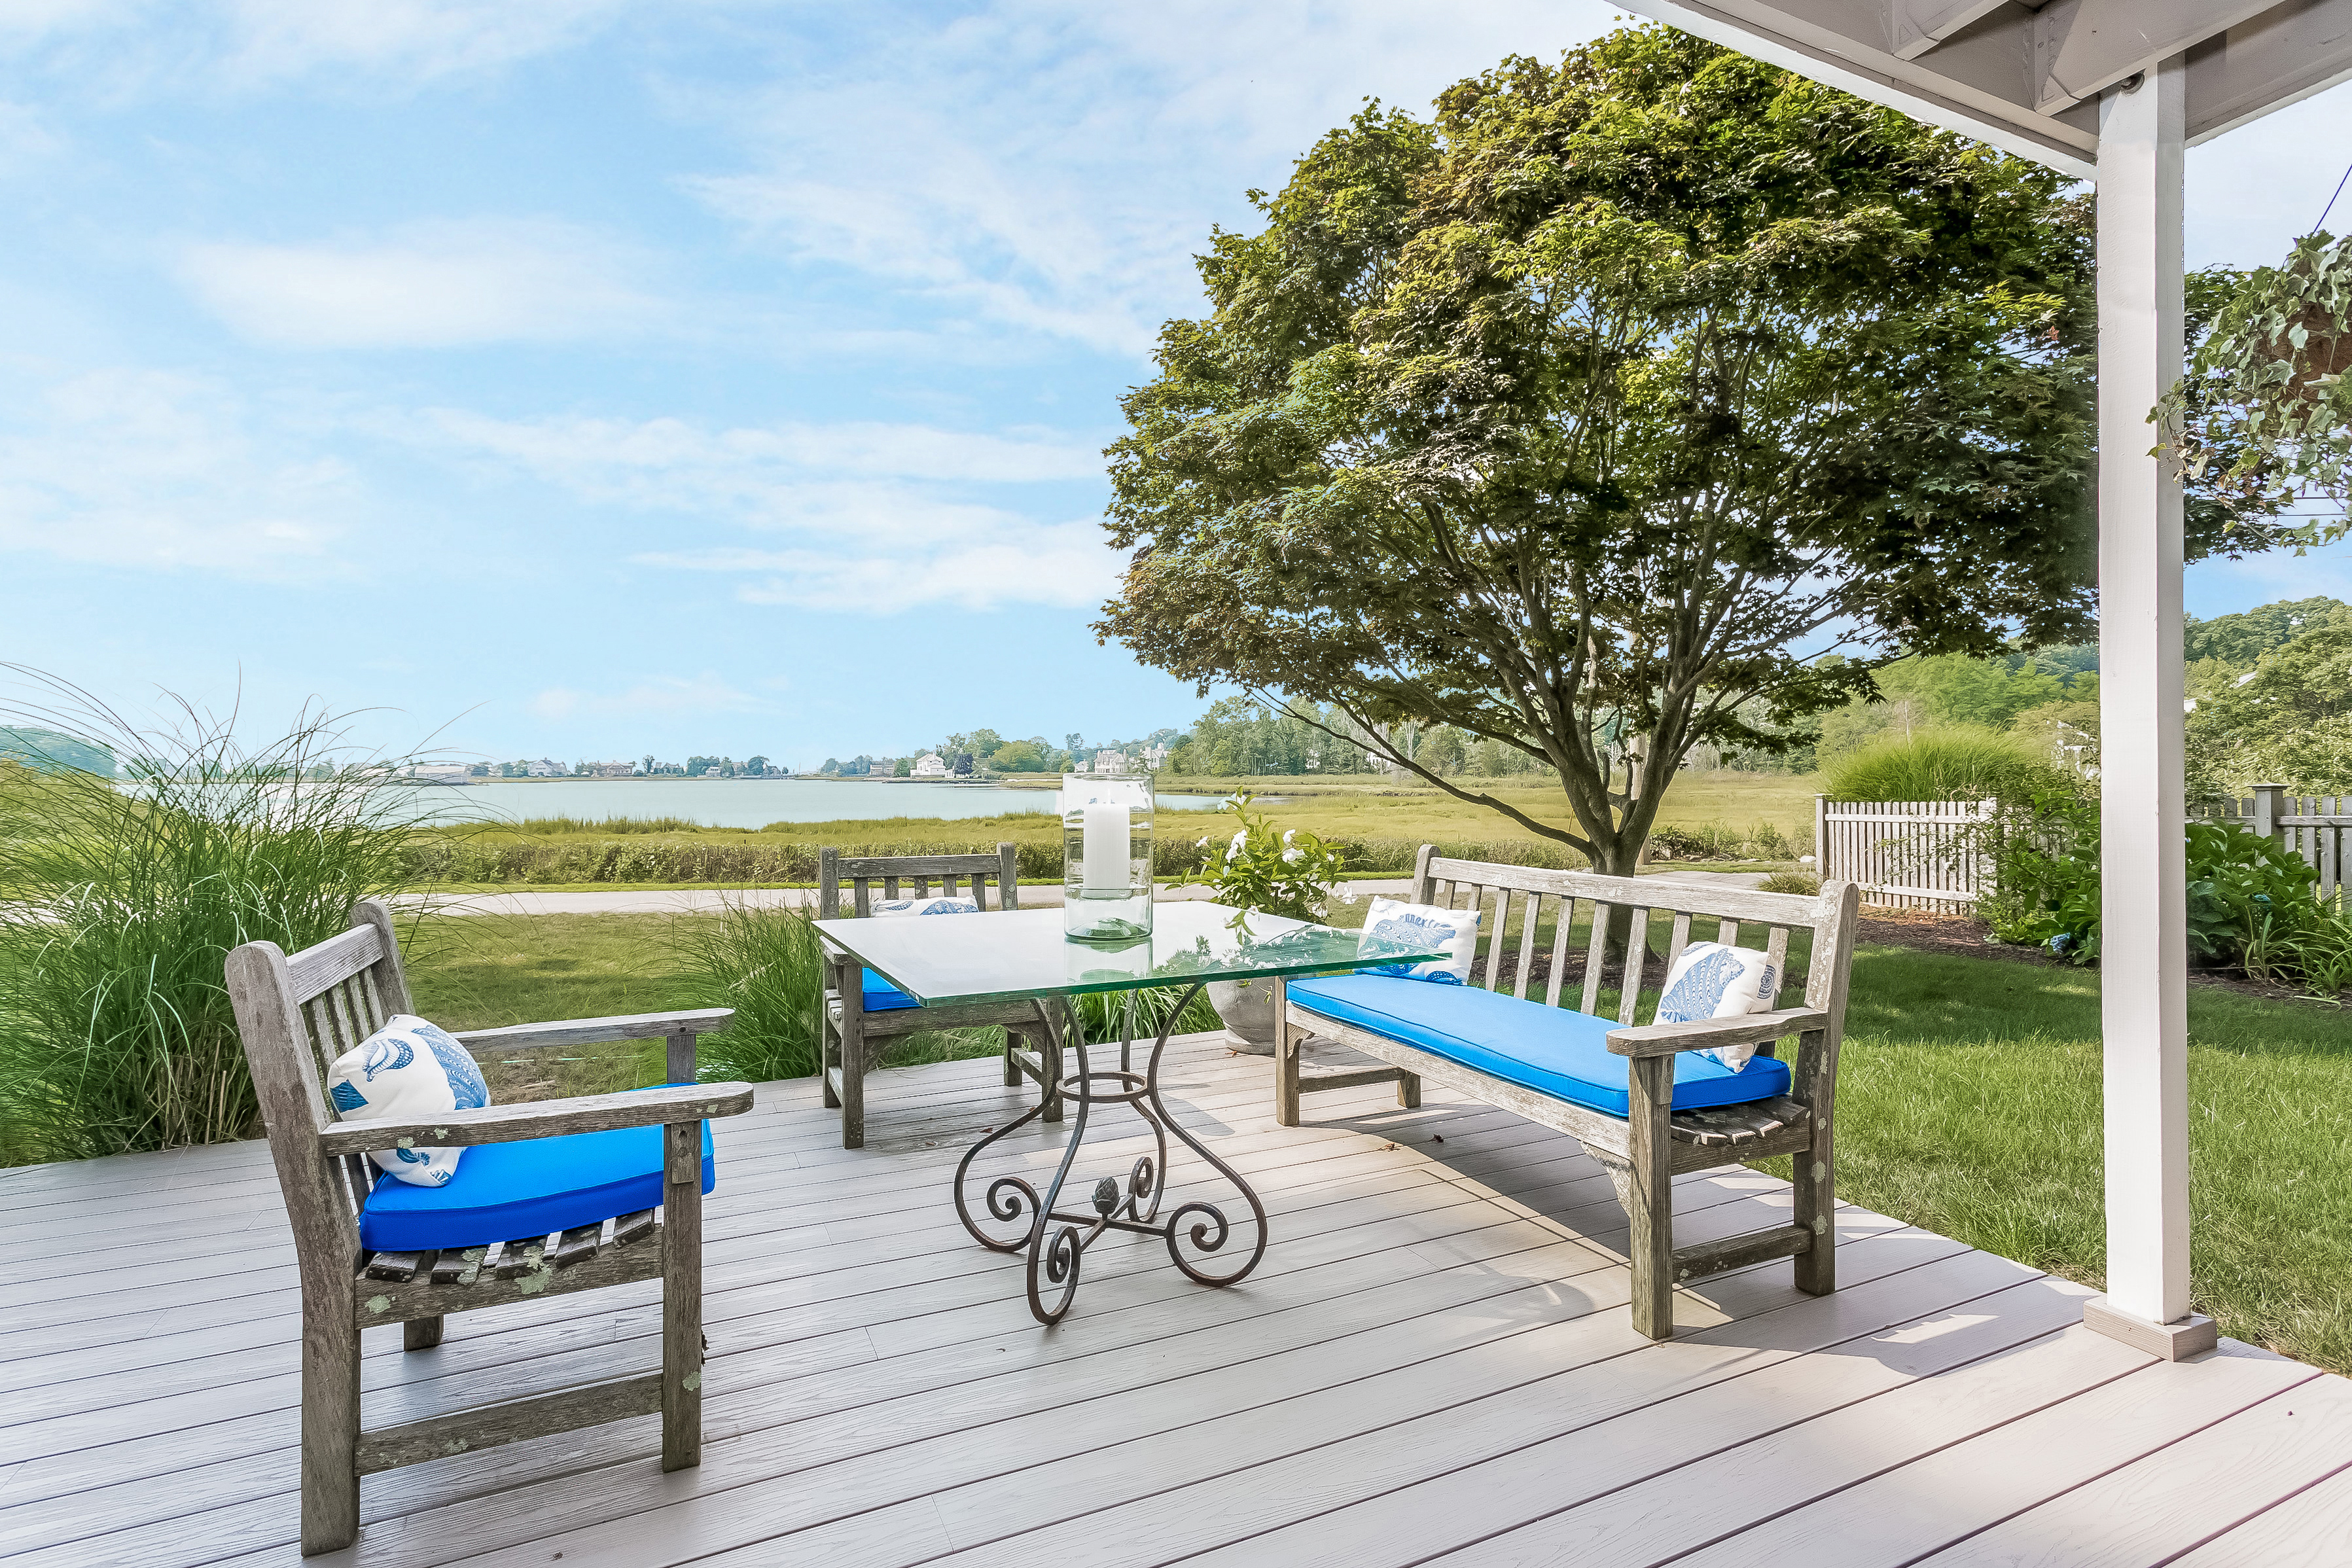 Single Family Home for Sale at Panaromic Water Views 94 Grove Point Road Westport, Connecticut, 06880 United States